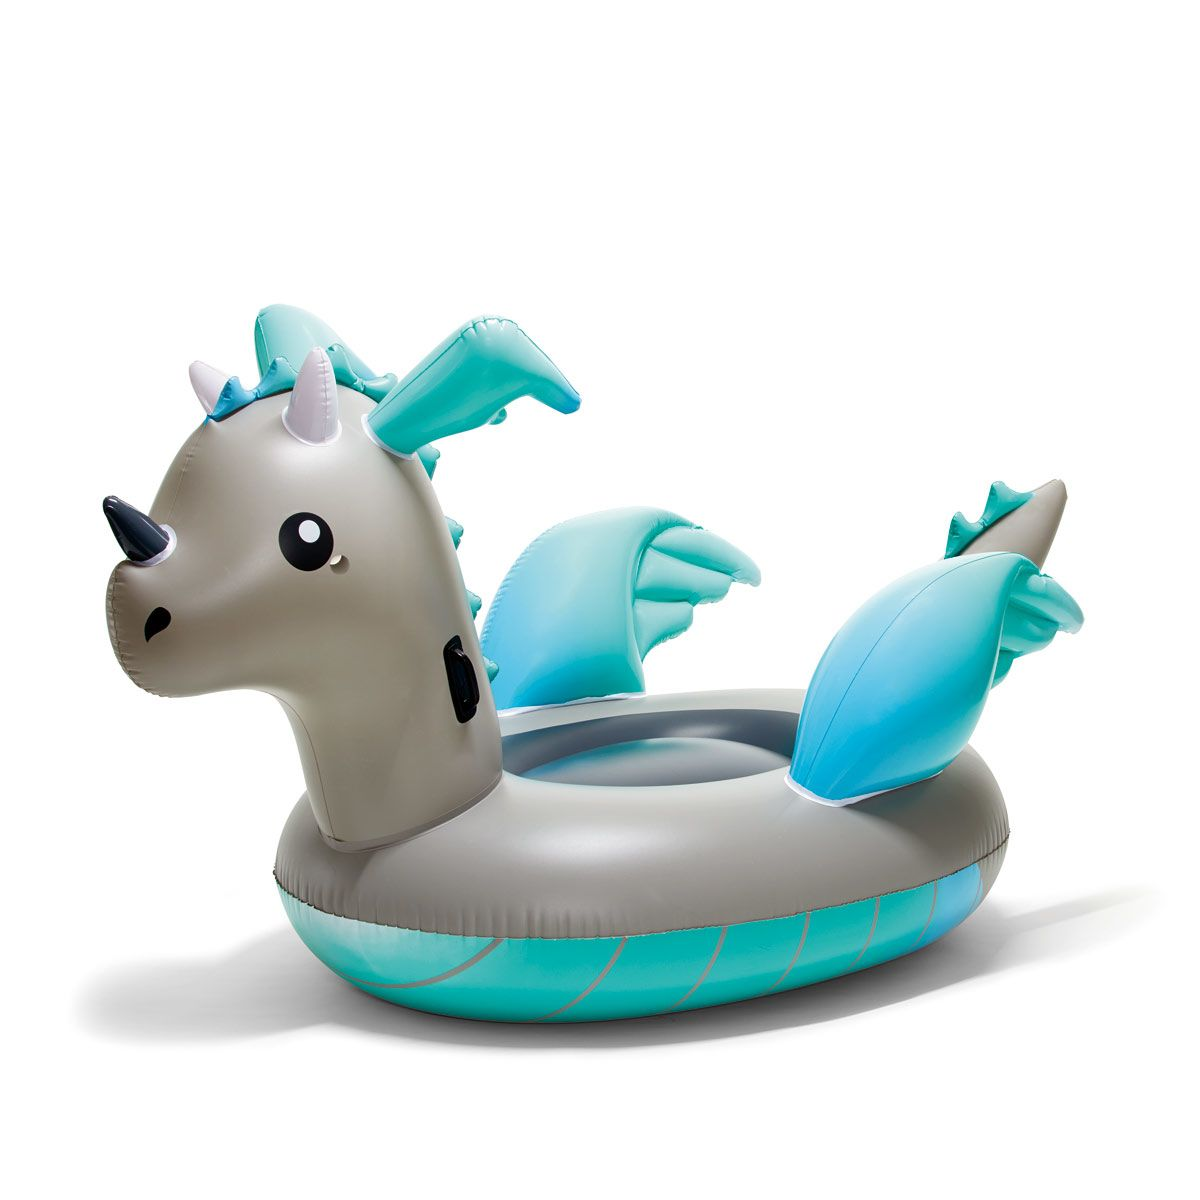 Inflatable Dragon - Grey | Kmart | Presents Ideas | Pinterest ...